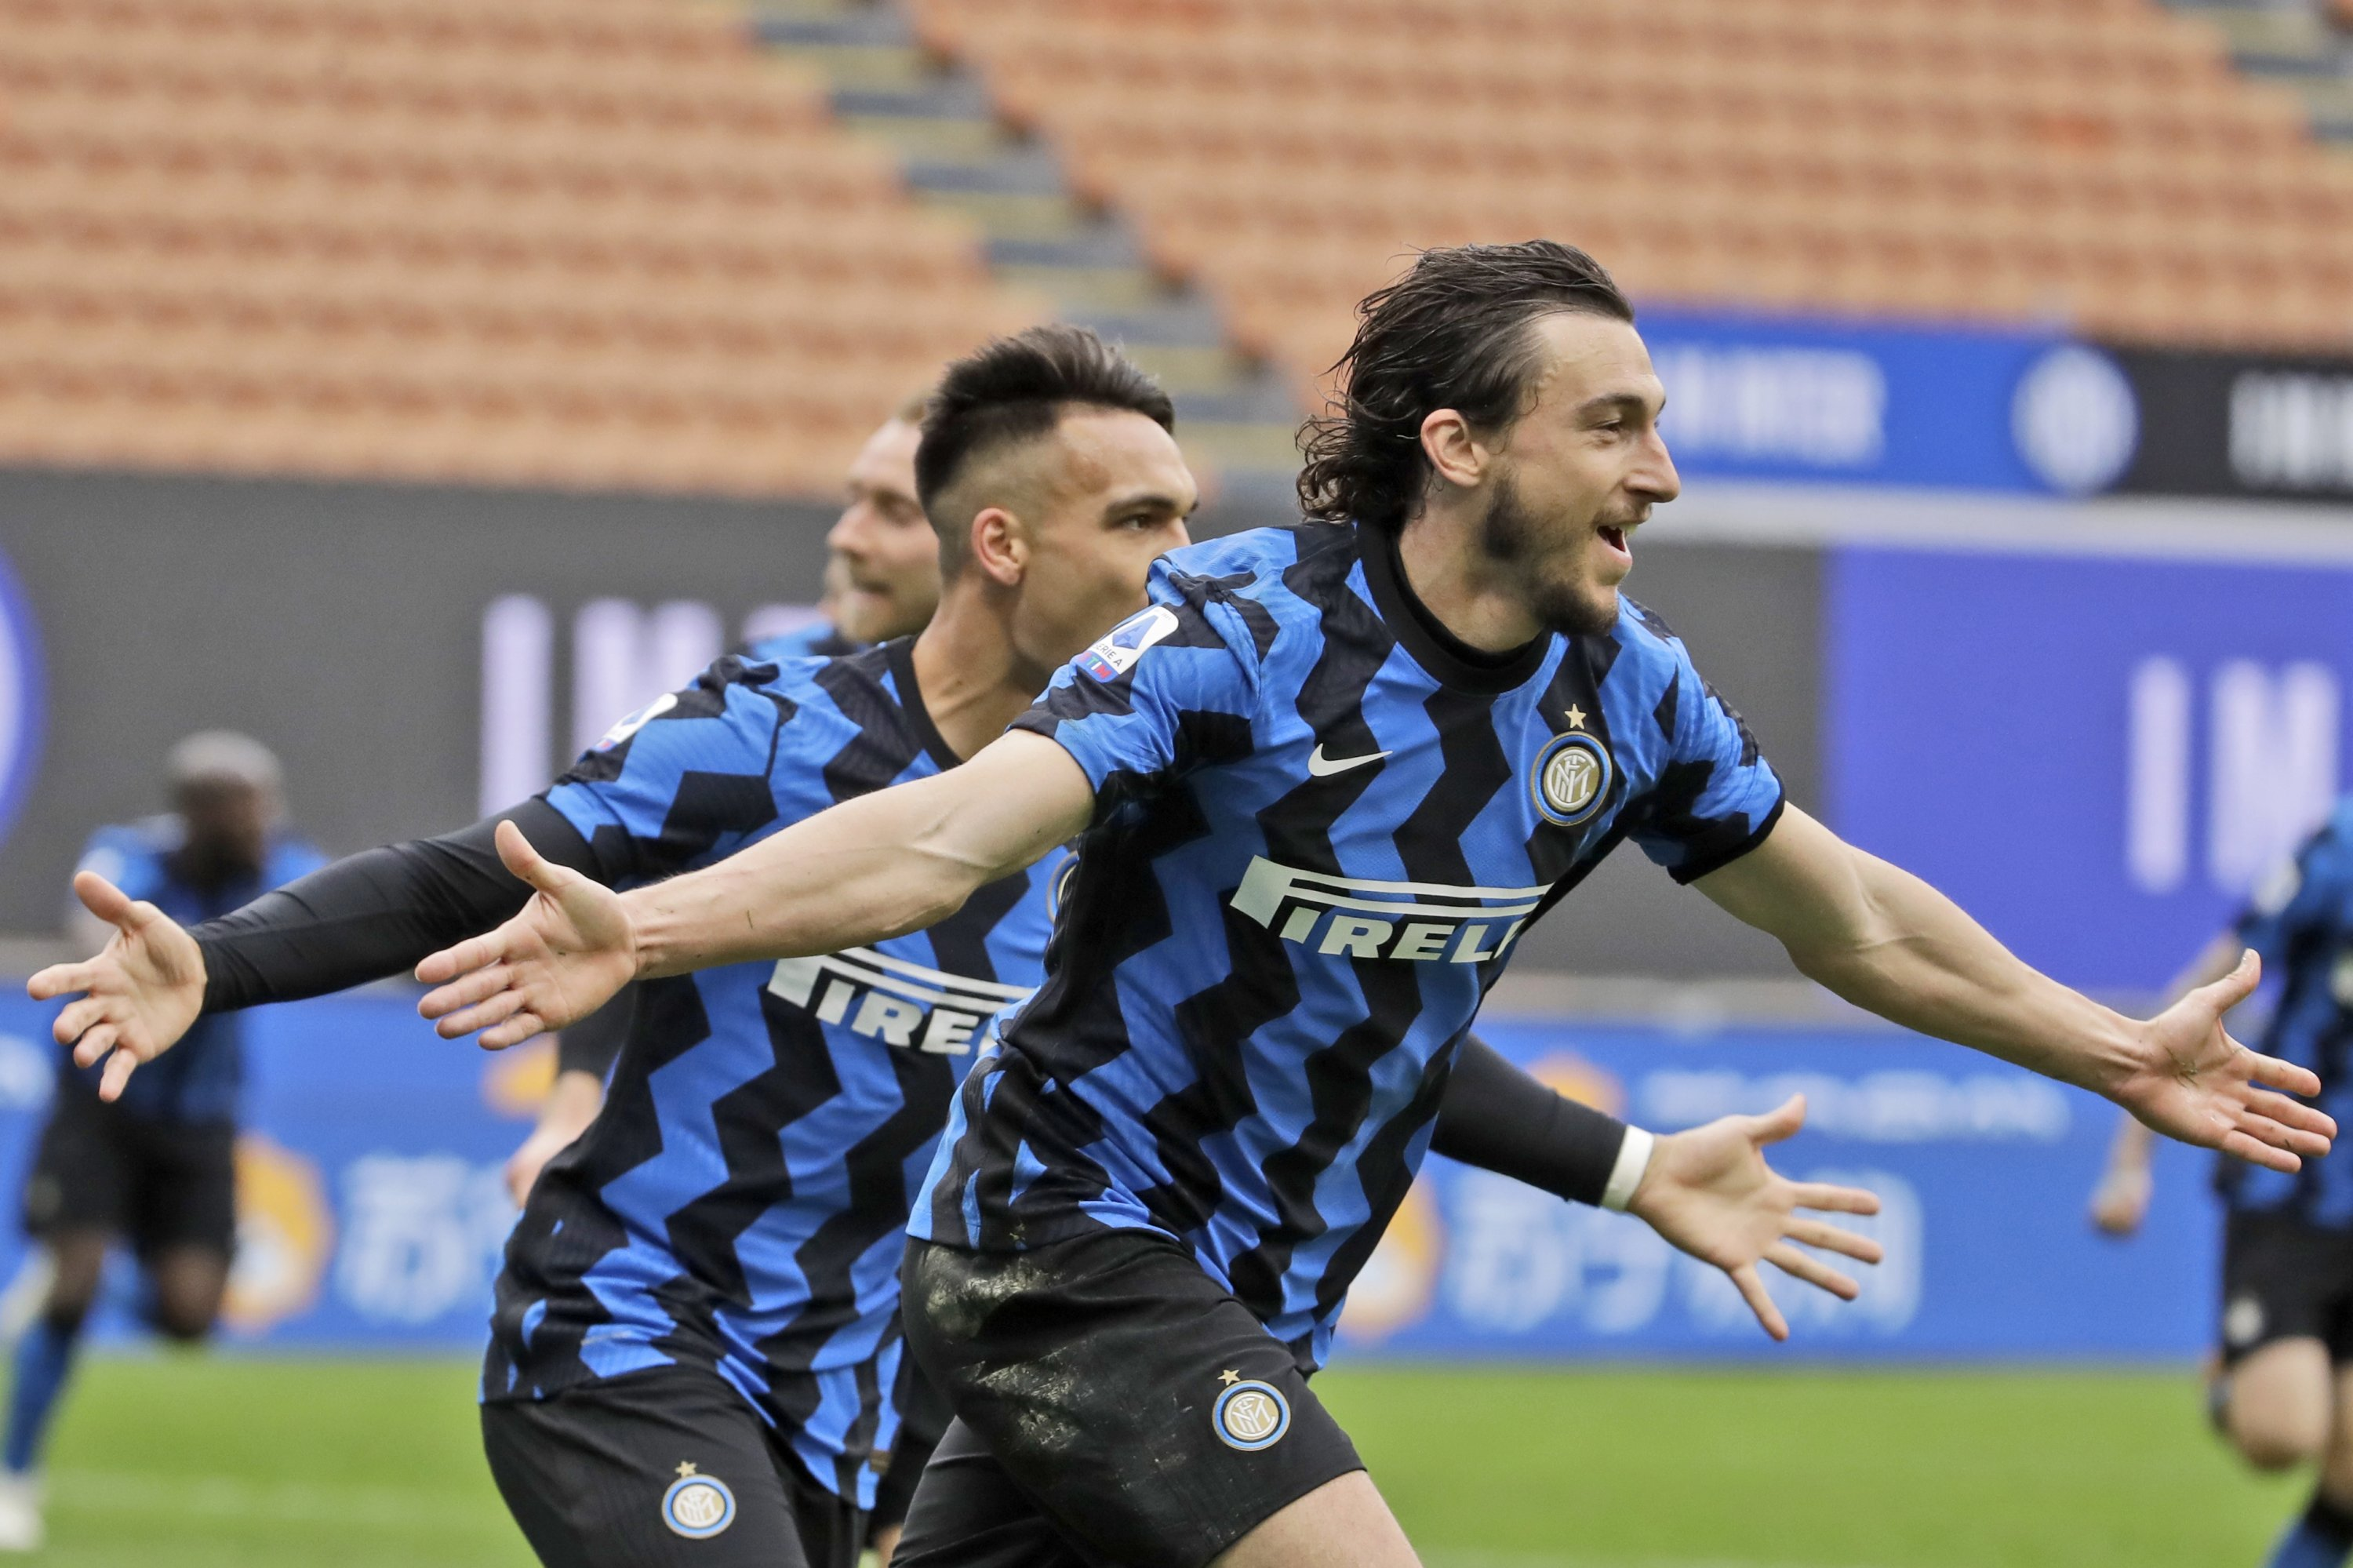 The matchup at drv pnk stadium is set to kick off at 8 p.m. Inter Milan Takes Step Closer To Serie A Title With Cagliari Win Daily Sabah